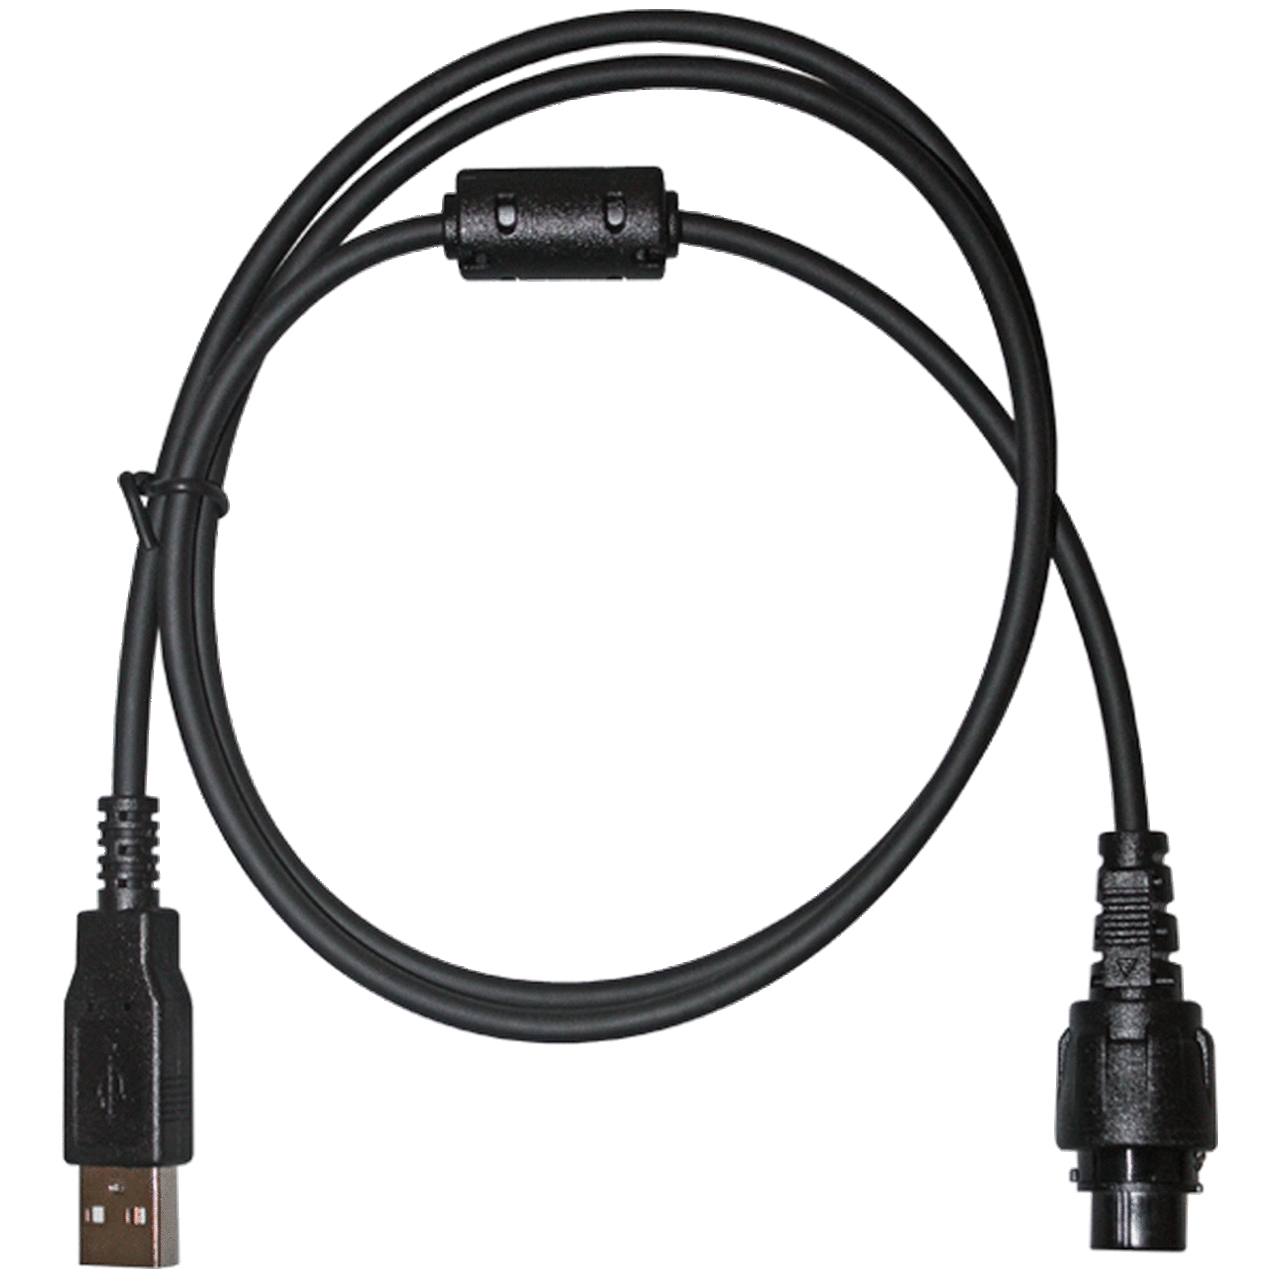 Programming Cable for Digital Mobile Radio